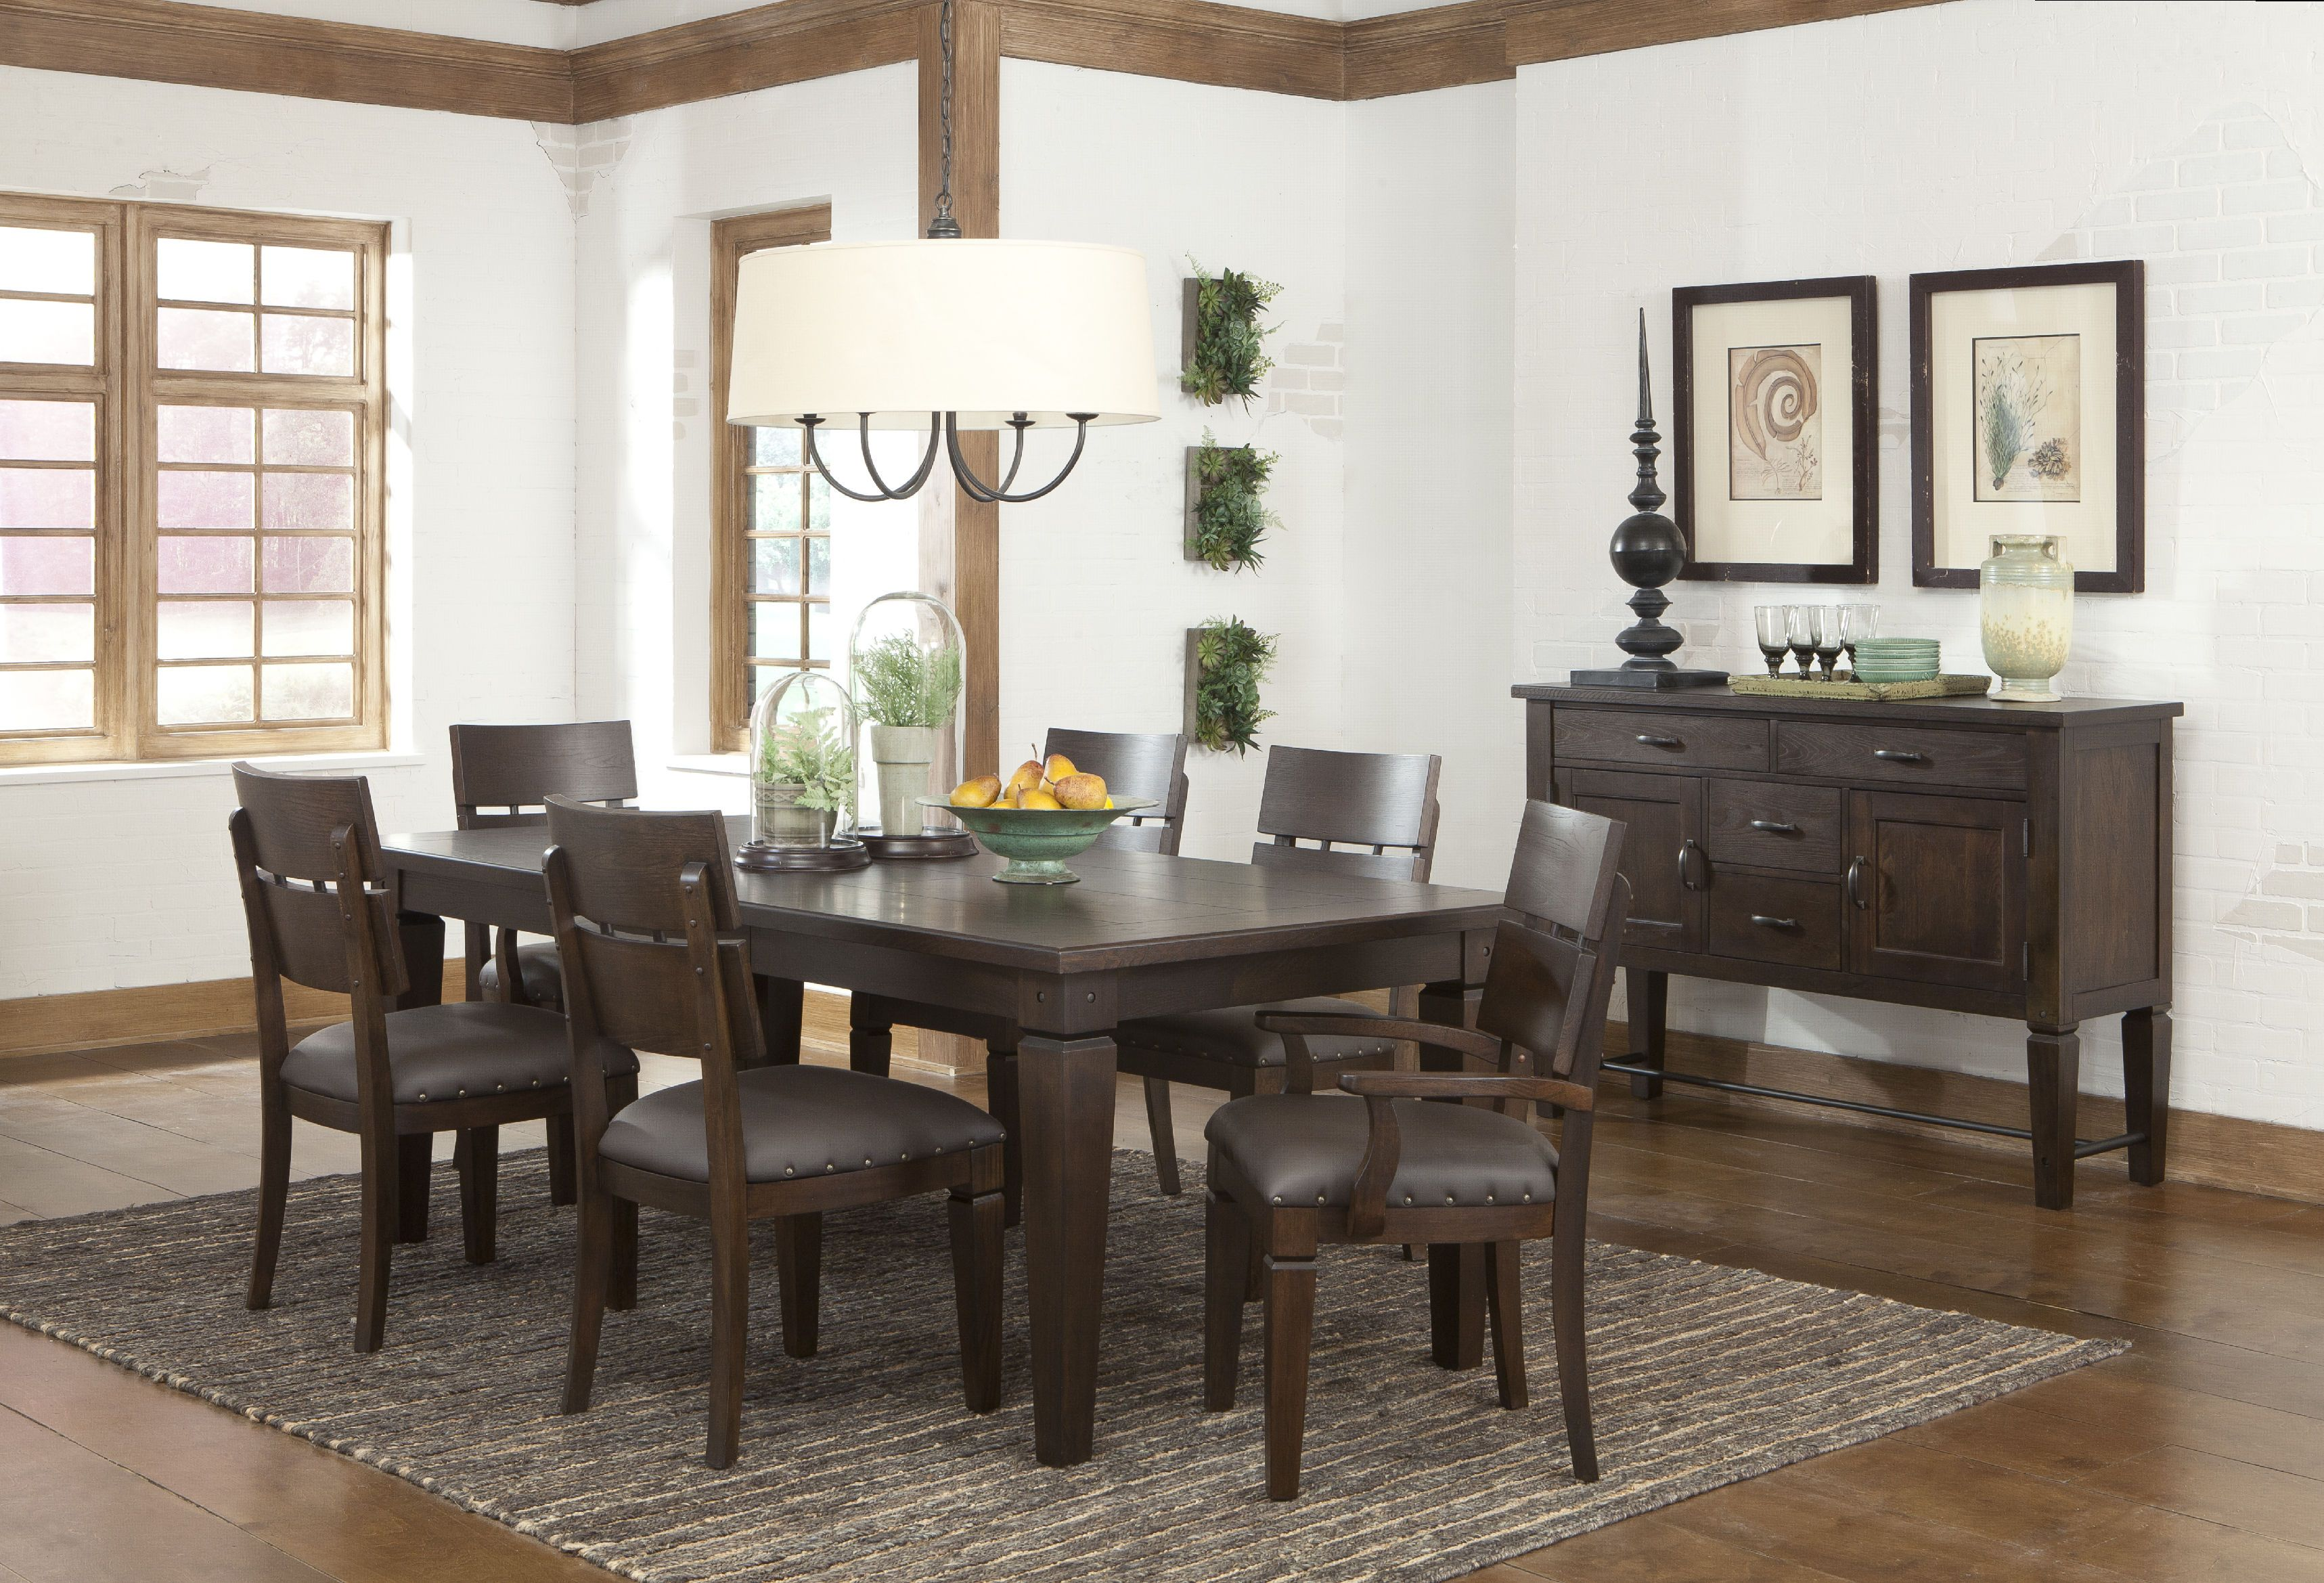 Intercon Furniture Kingston Dining Room Furniture  Intercon  Lo Fascinating Klaussner Dining Room Furniture Decorating Inspiration